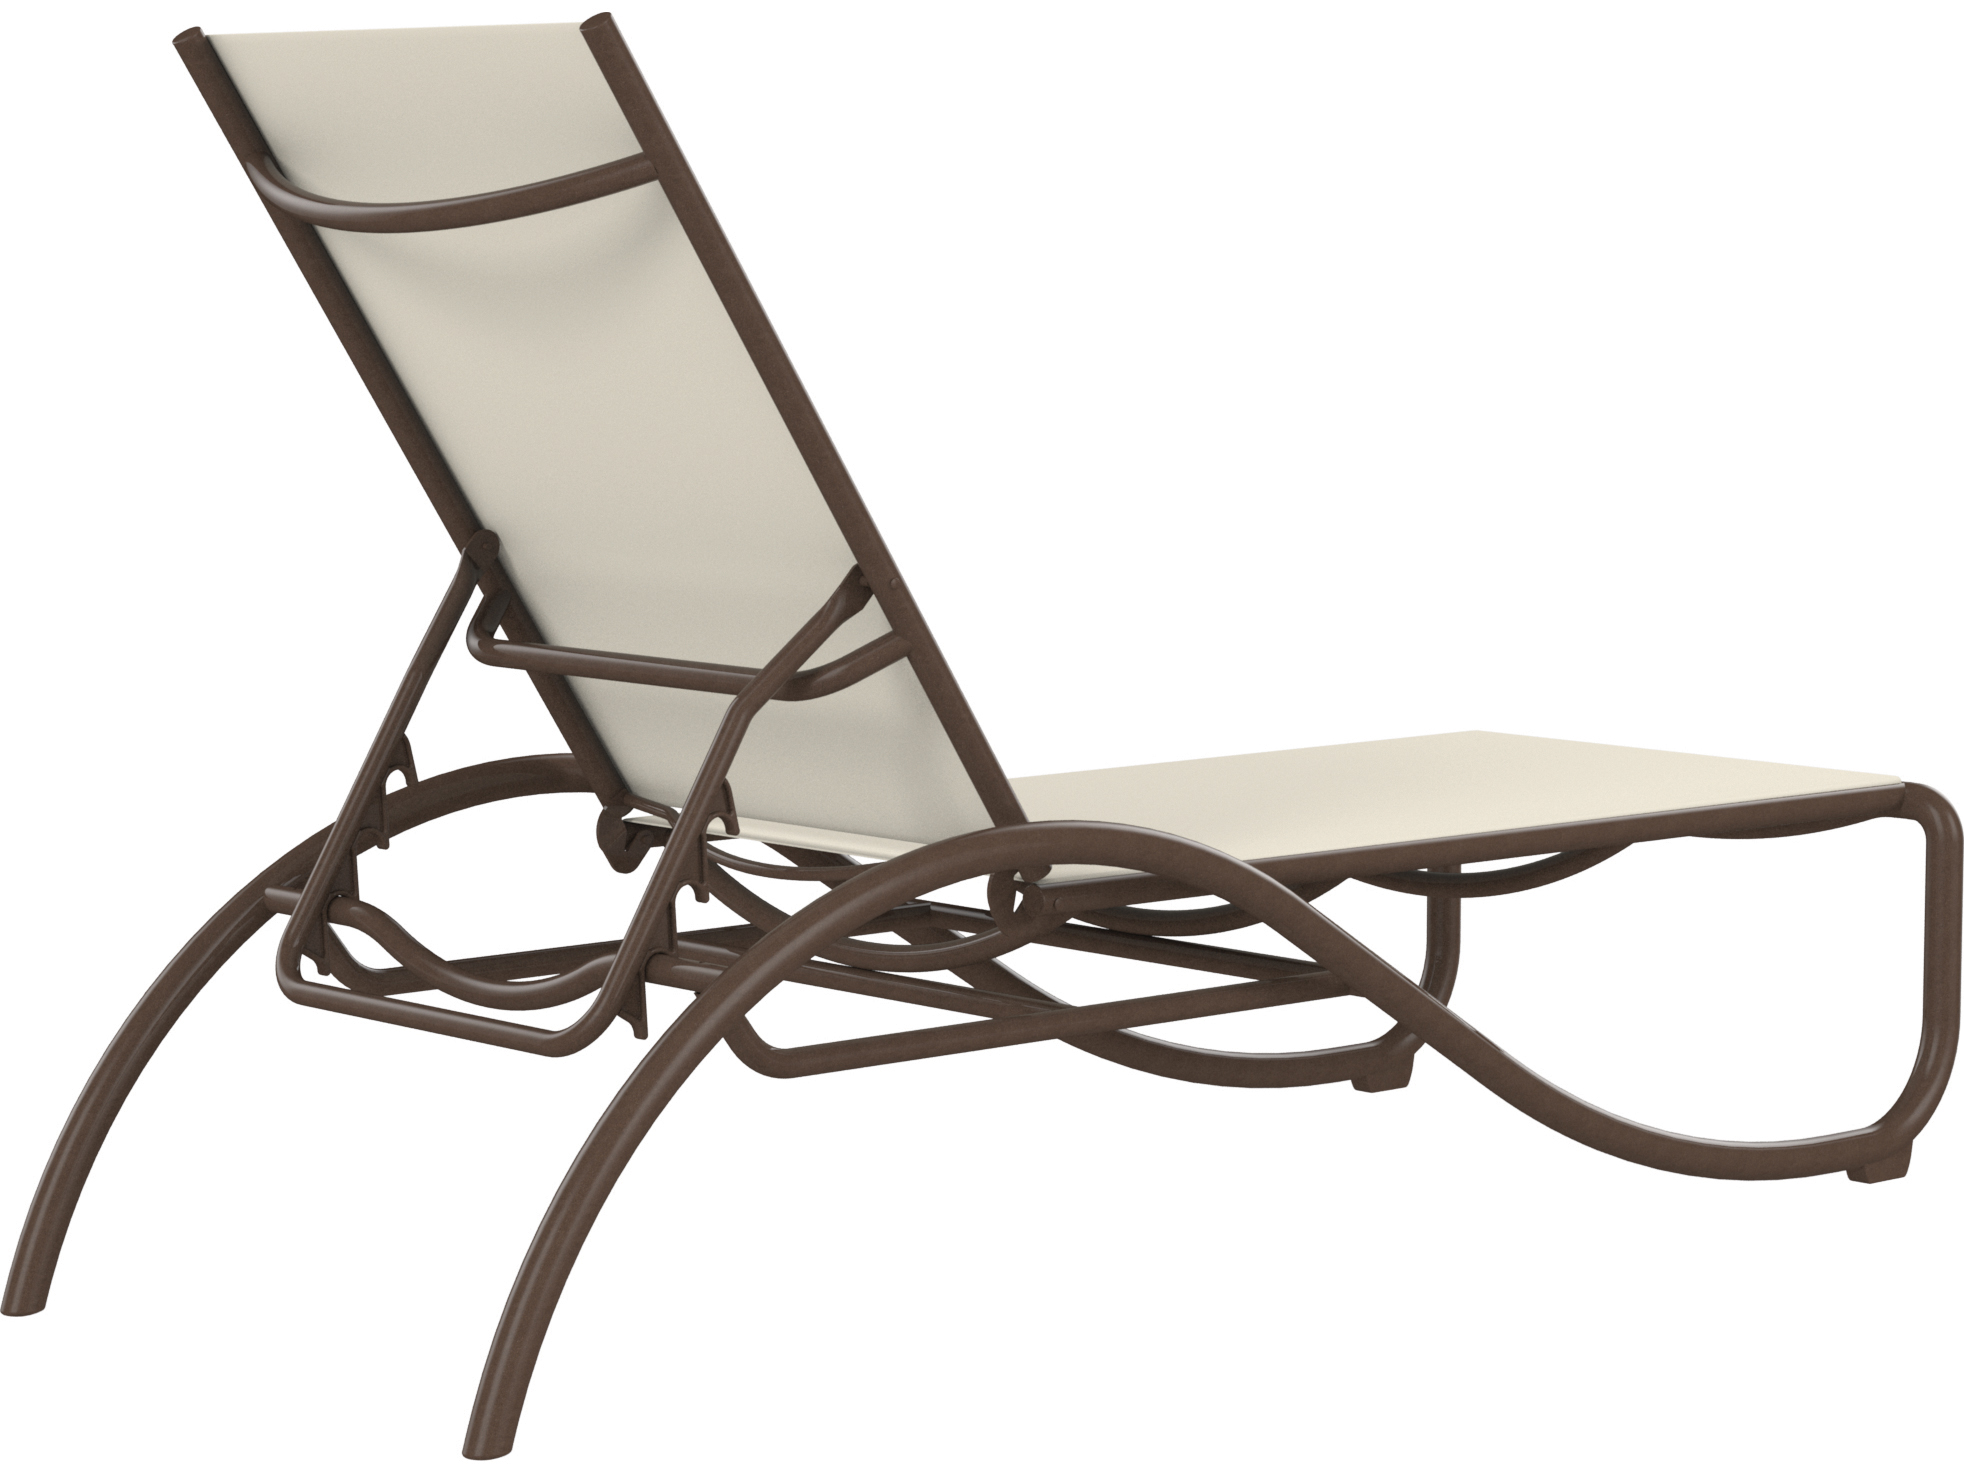 Tropitone la scala relaxed sling aluminum stackable chaise for Aluminum sling chaise lounge